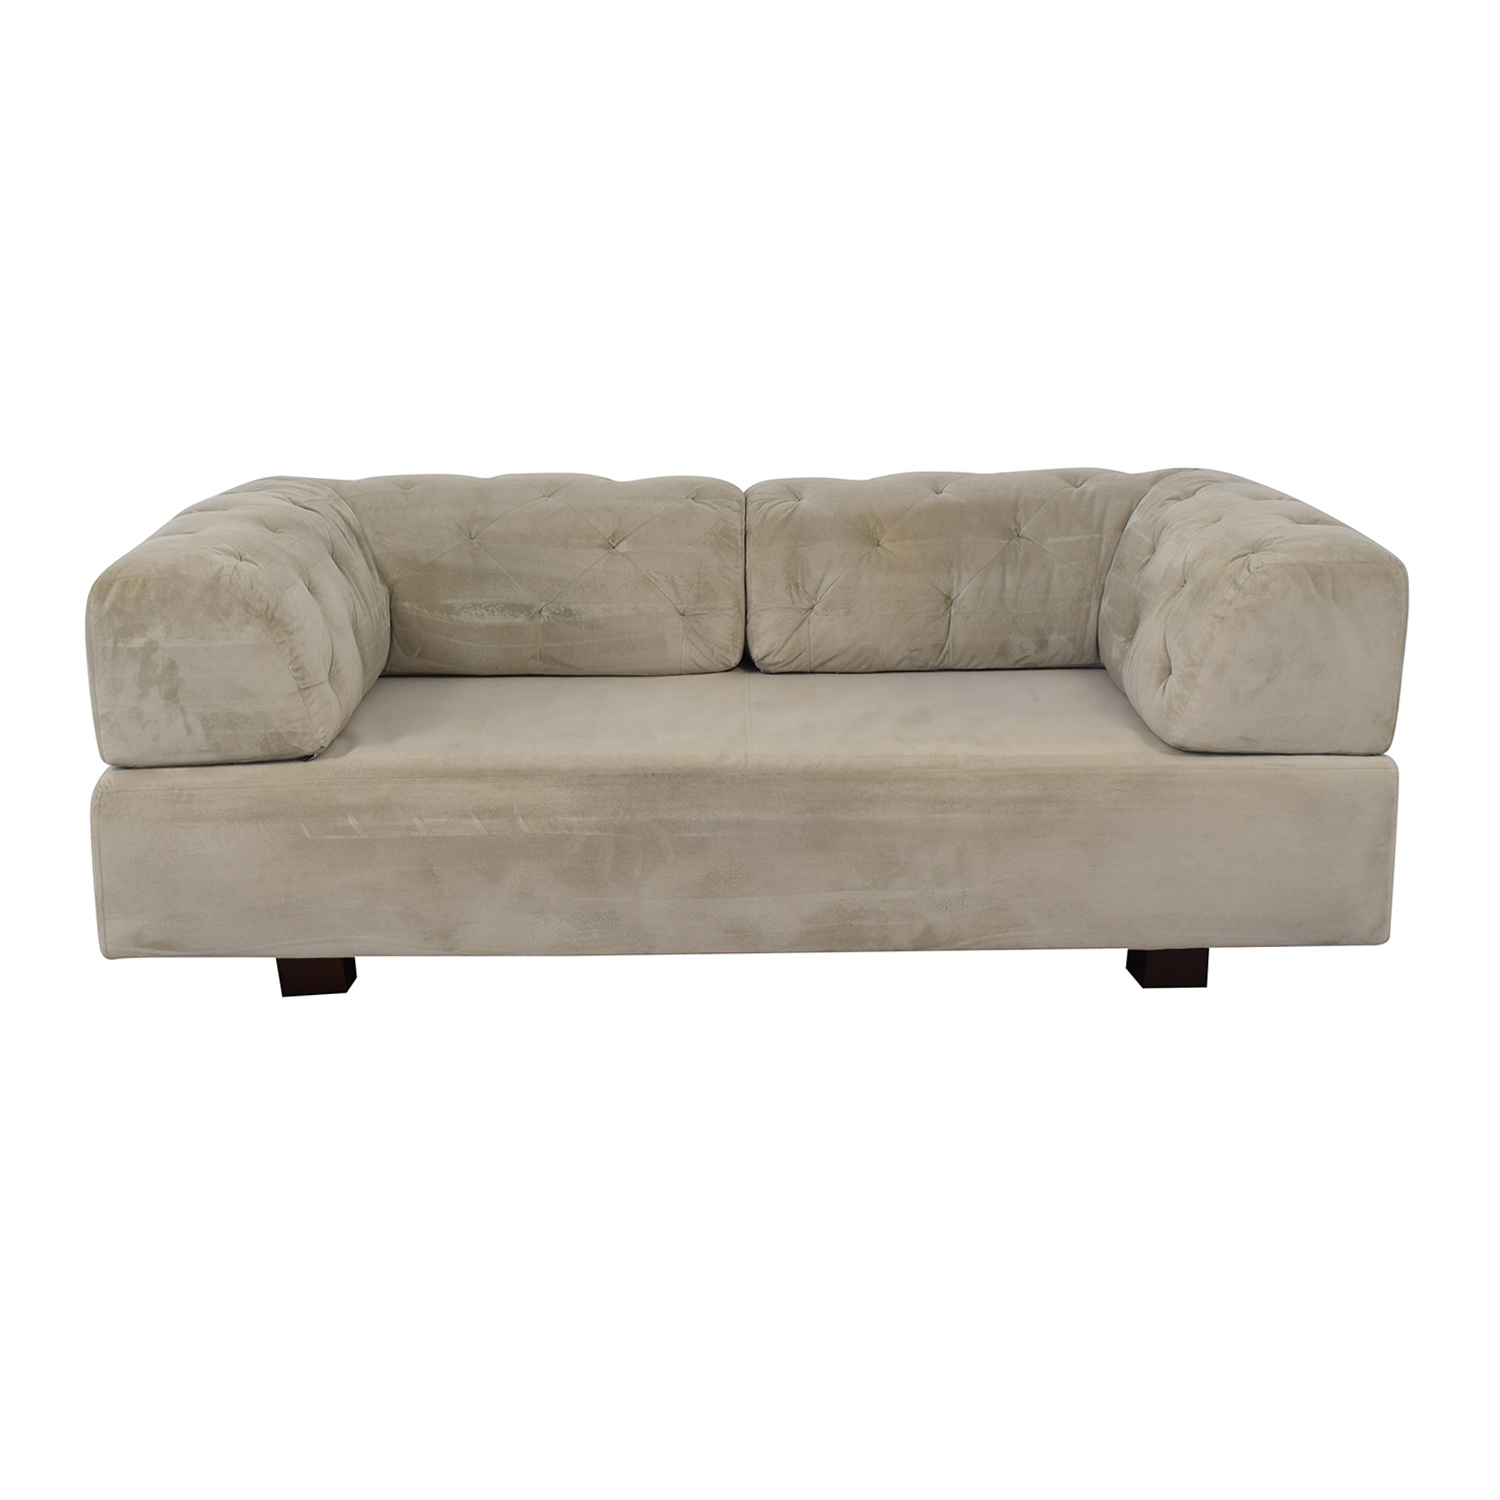 buy West Elm Tillary Tufted Sofa with Two Corner Cushions West Elm Classic Sofas